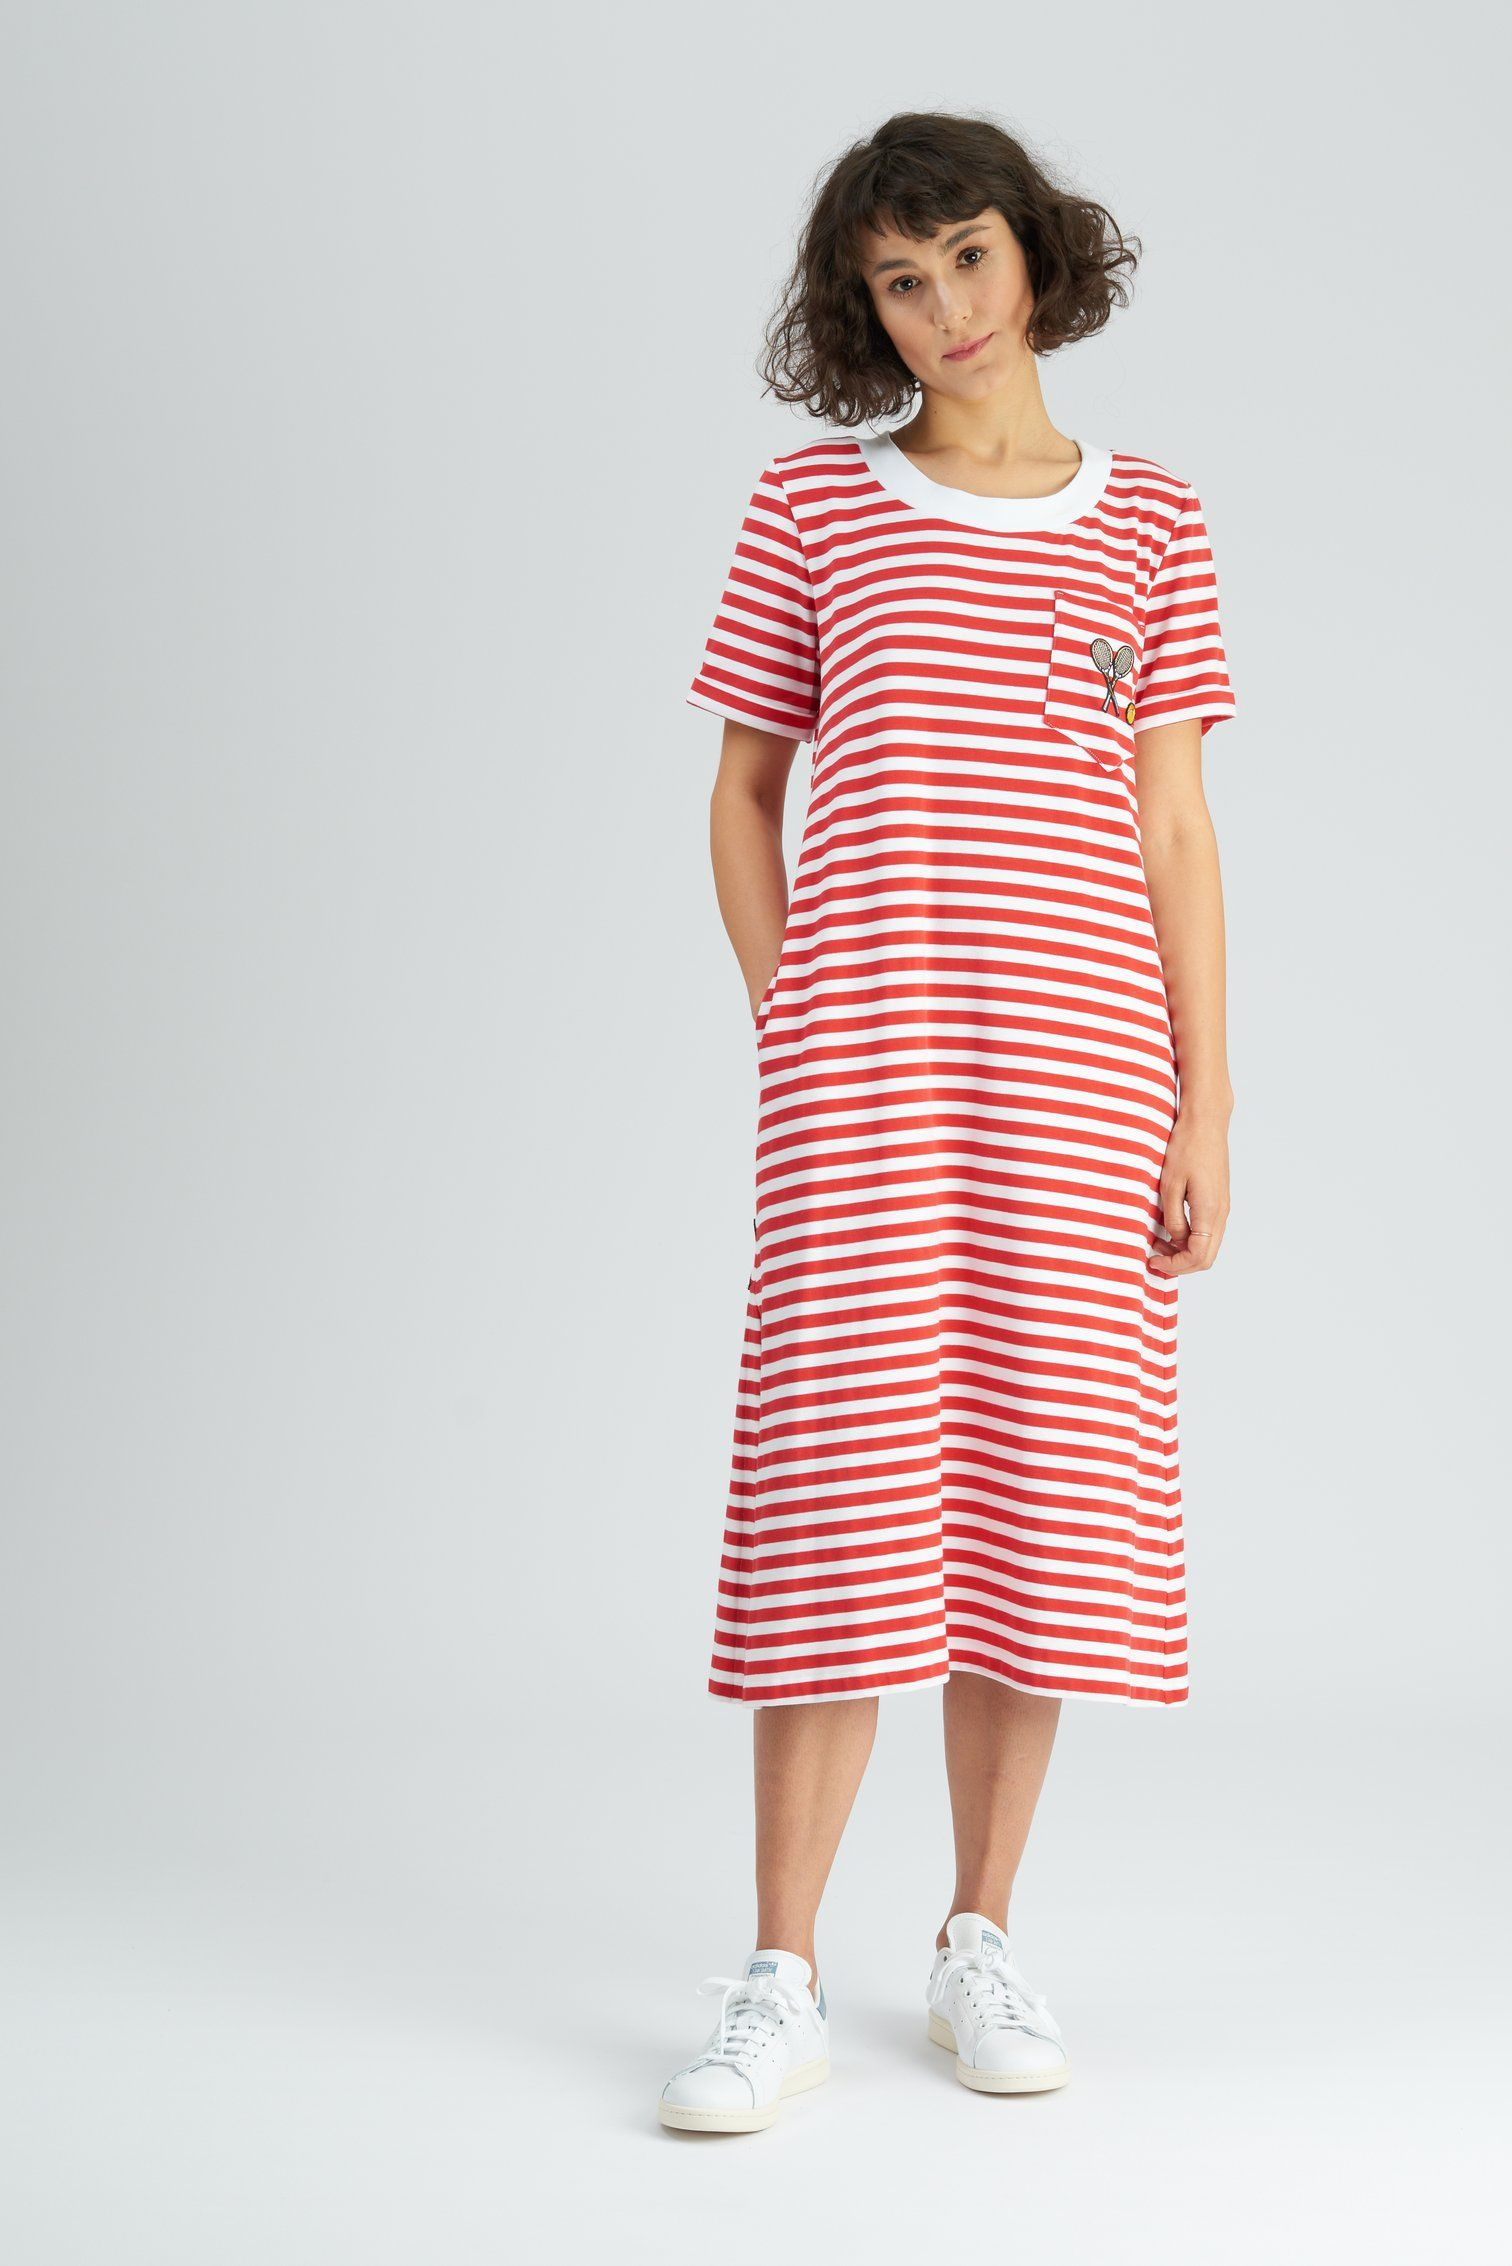 0b558d0a8852f Evert Striped T-shirt Dress by Tomcsanyi at Wolf and Badger A t-shirt  jersey maxi dress with front pocket and embroidered badge detail. With  sporty red and ...